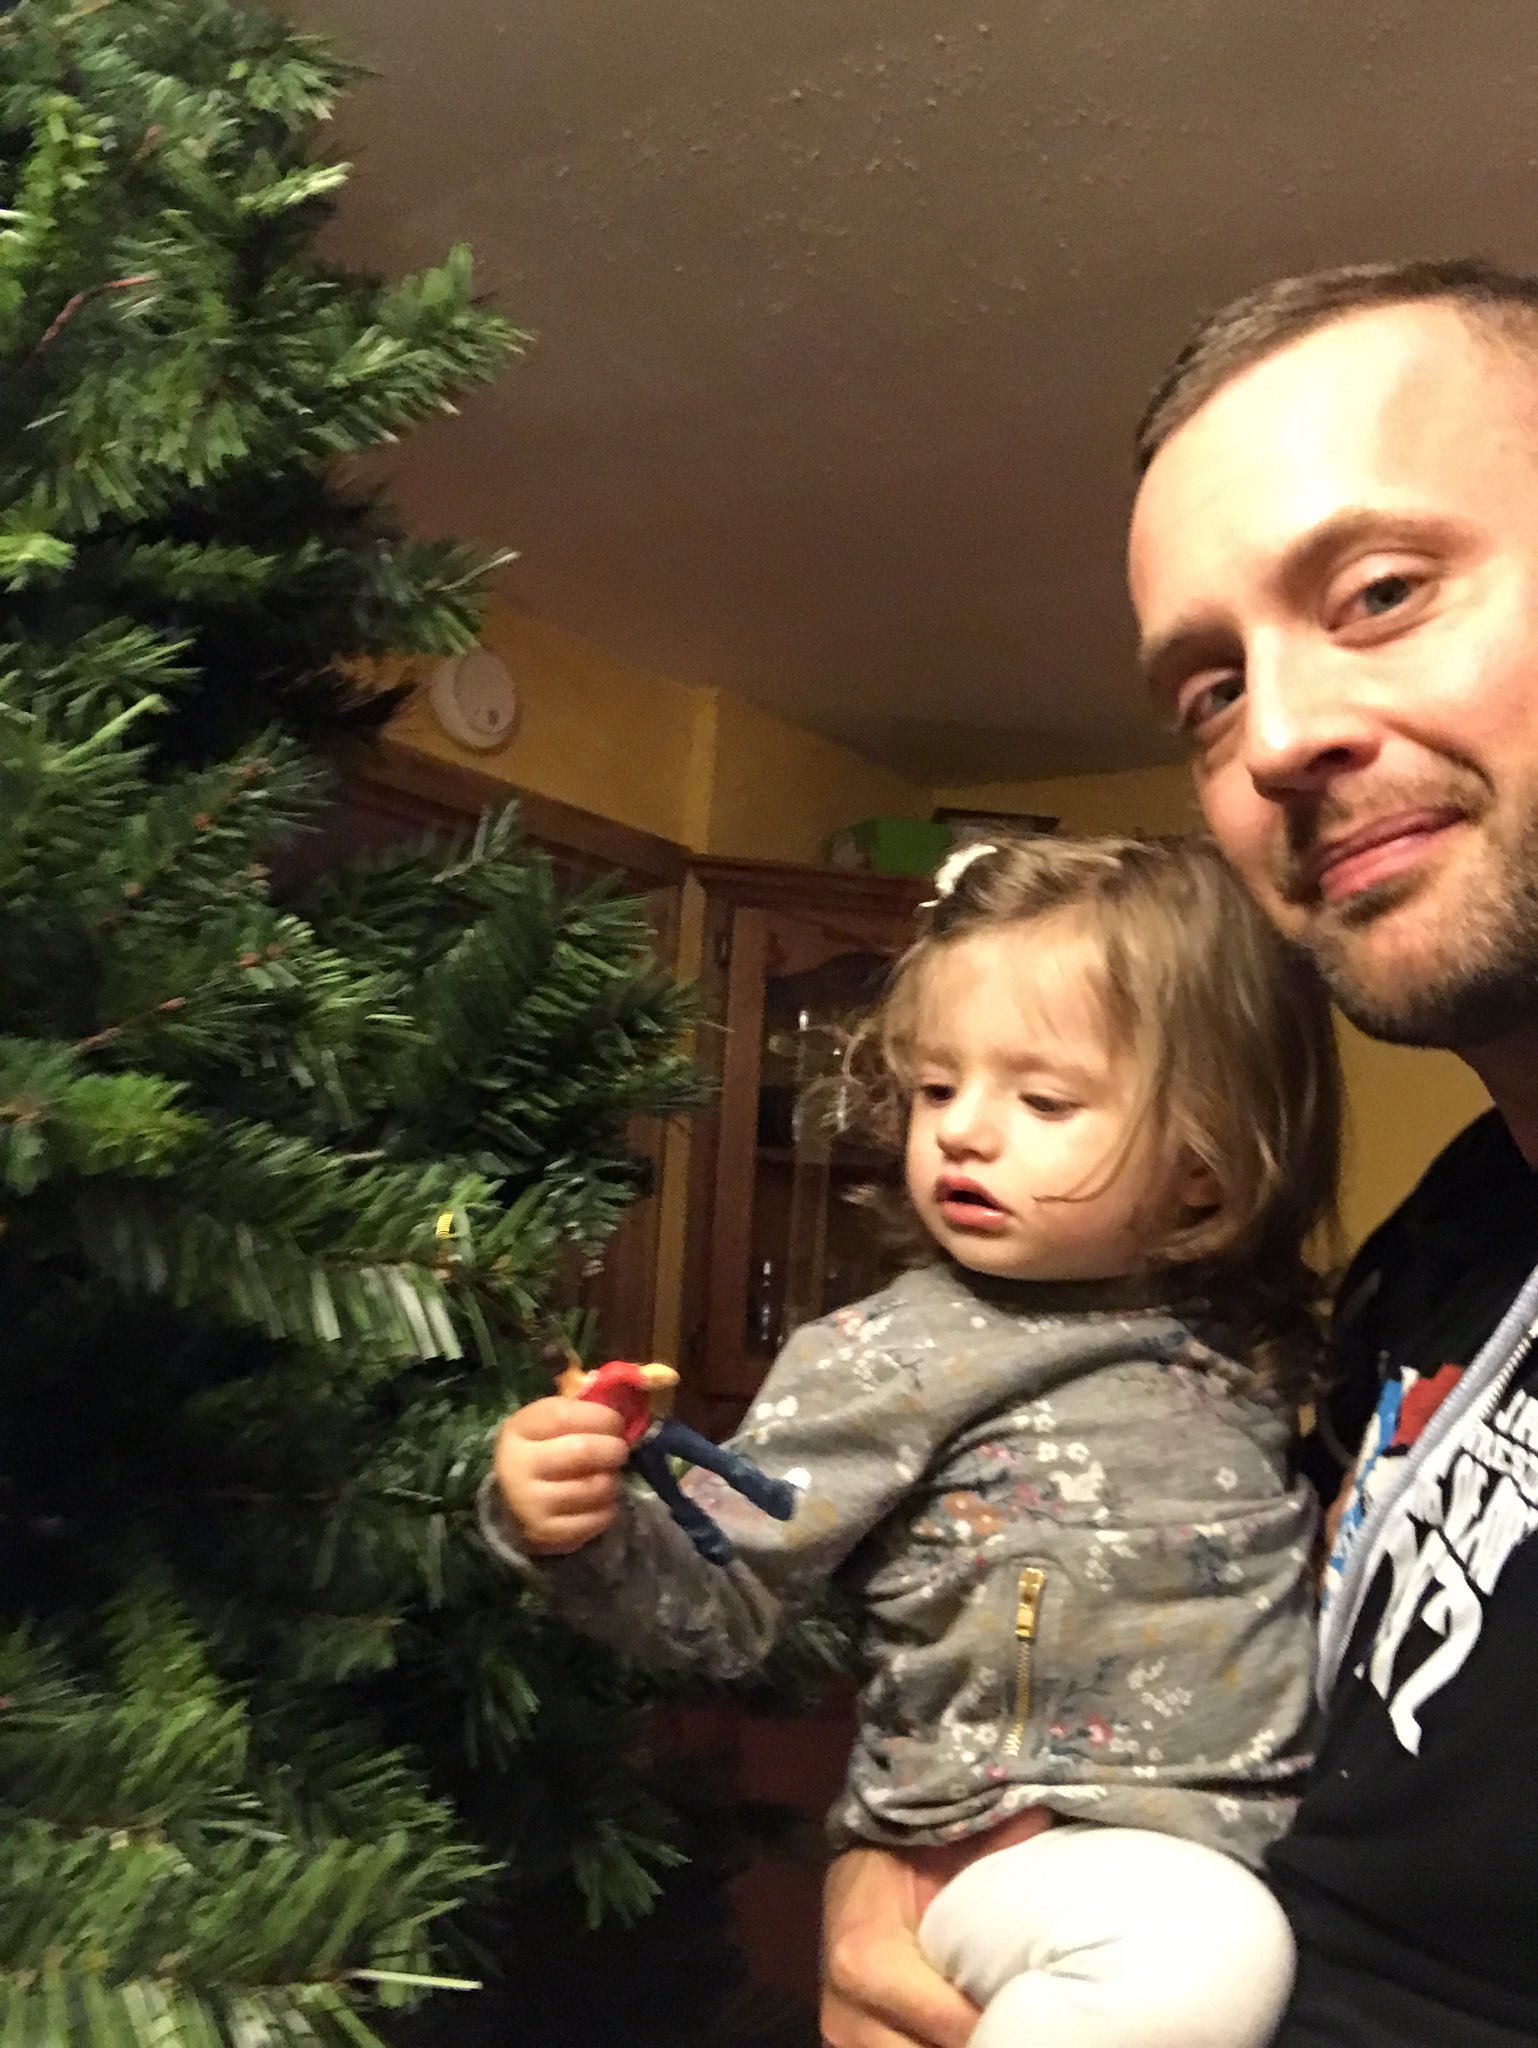 RT @derekashmann: Keeping the tradition alive with my daughter... First decoration on the tree is @ItsTheSituation https://t.co/gidnBVpwr7